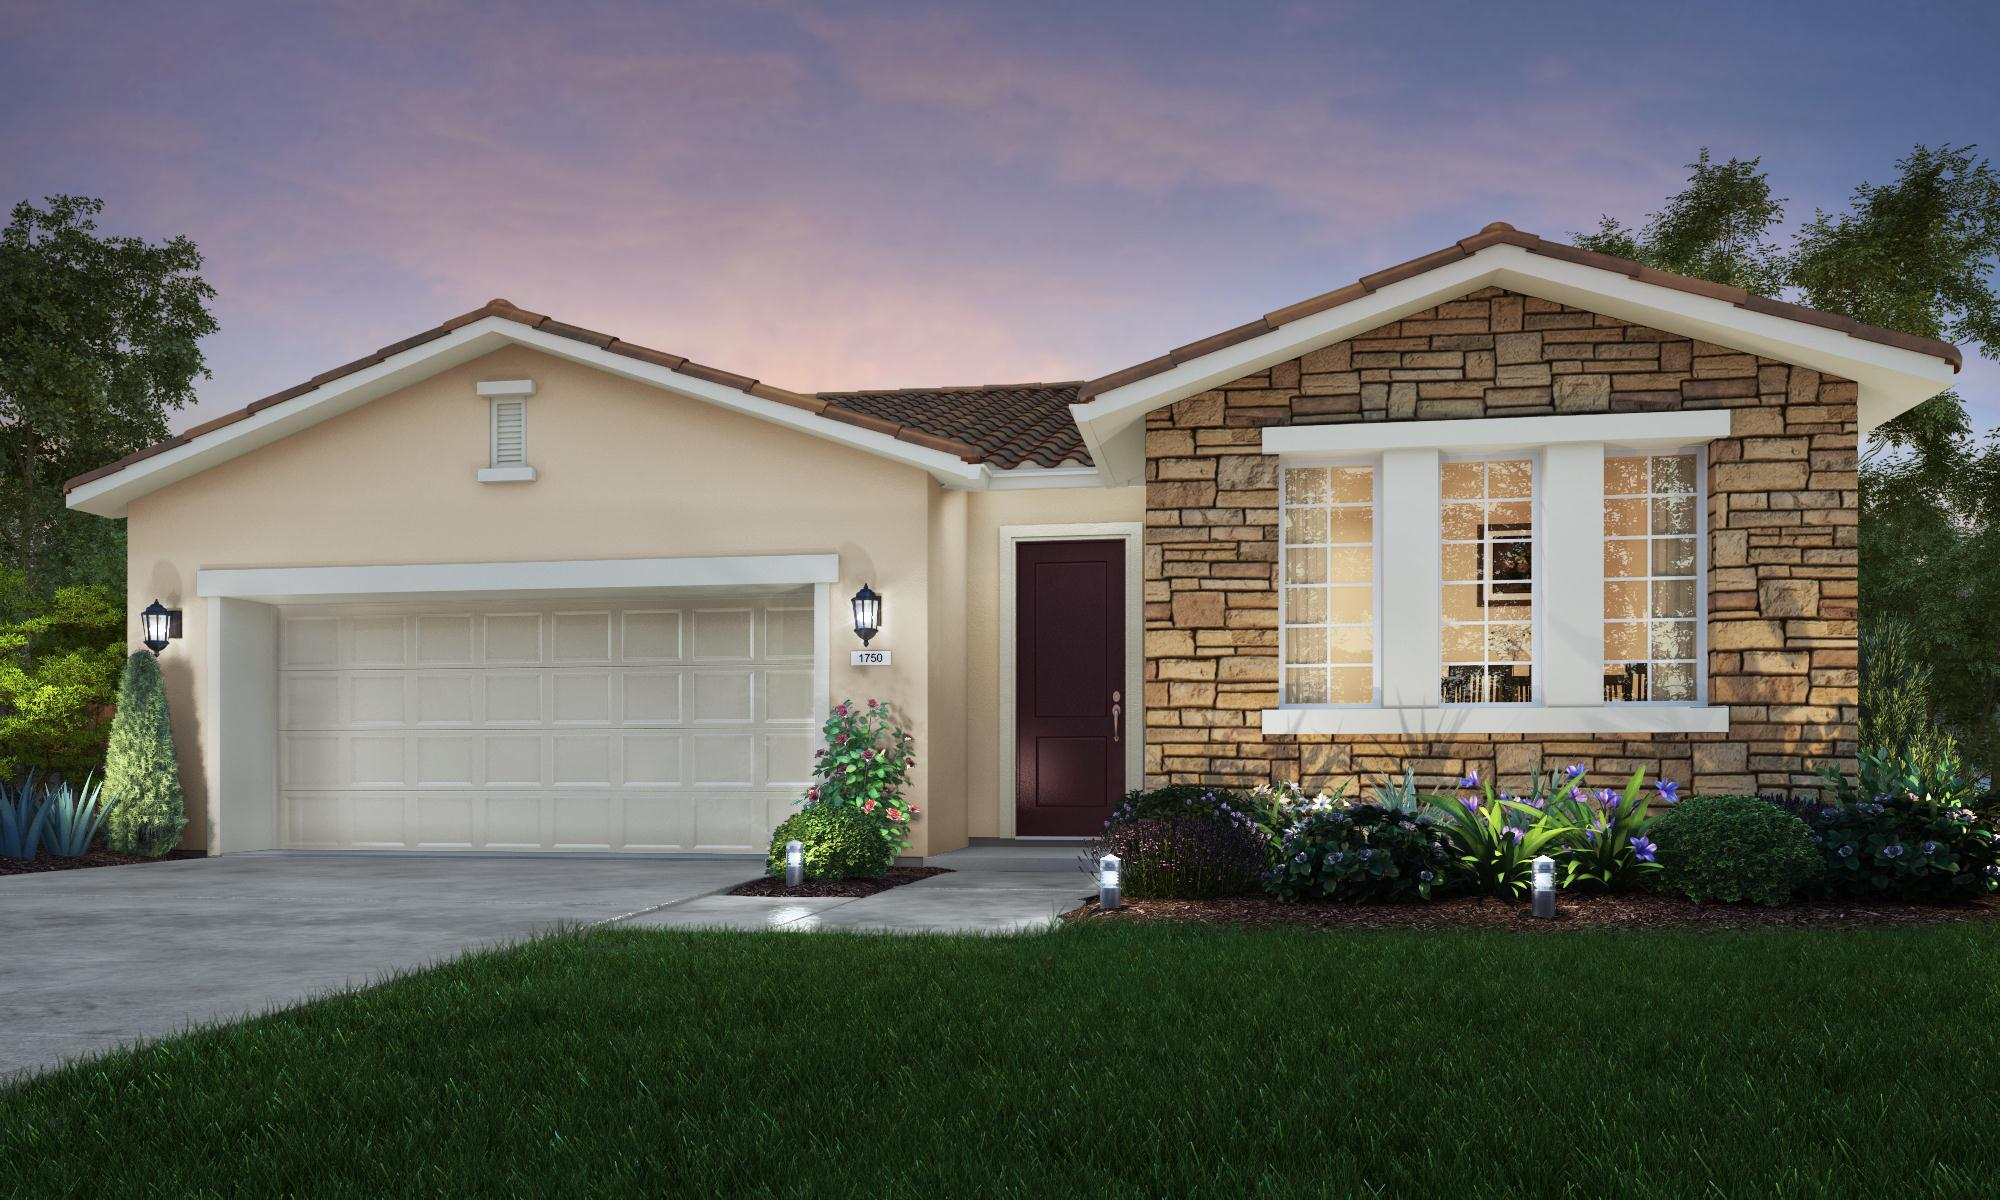 'Shaunessy Village' by Stonefield Home in Merced